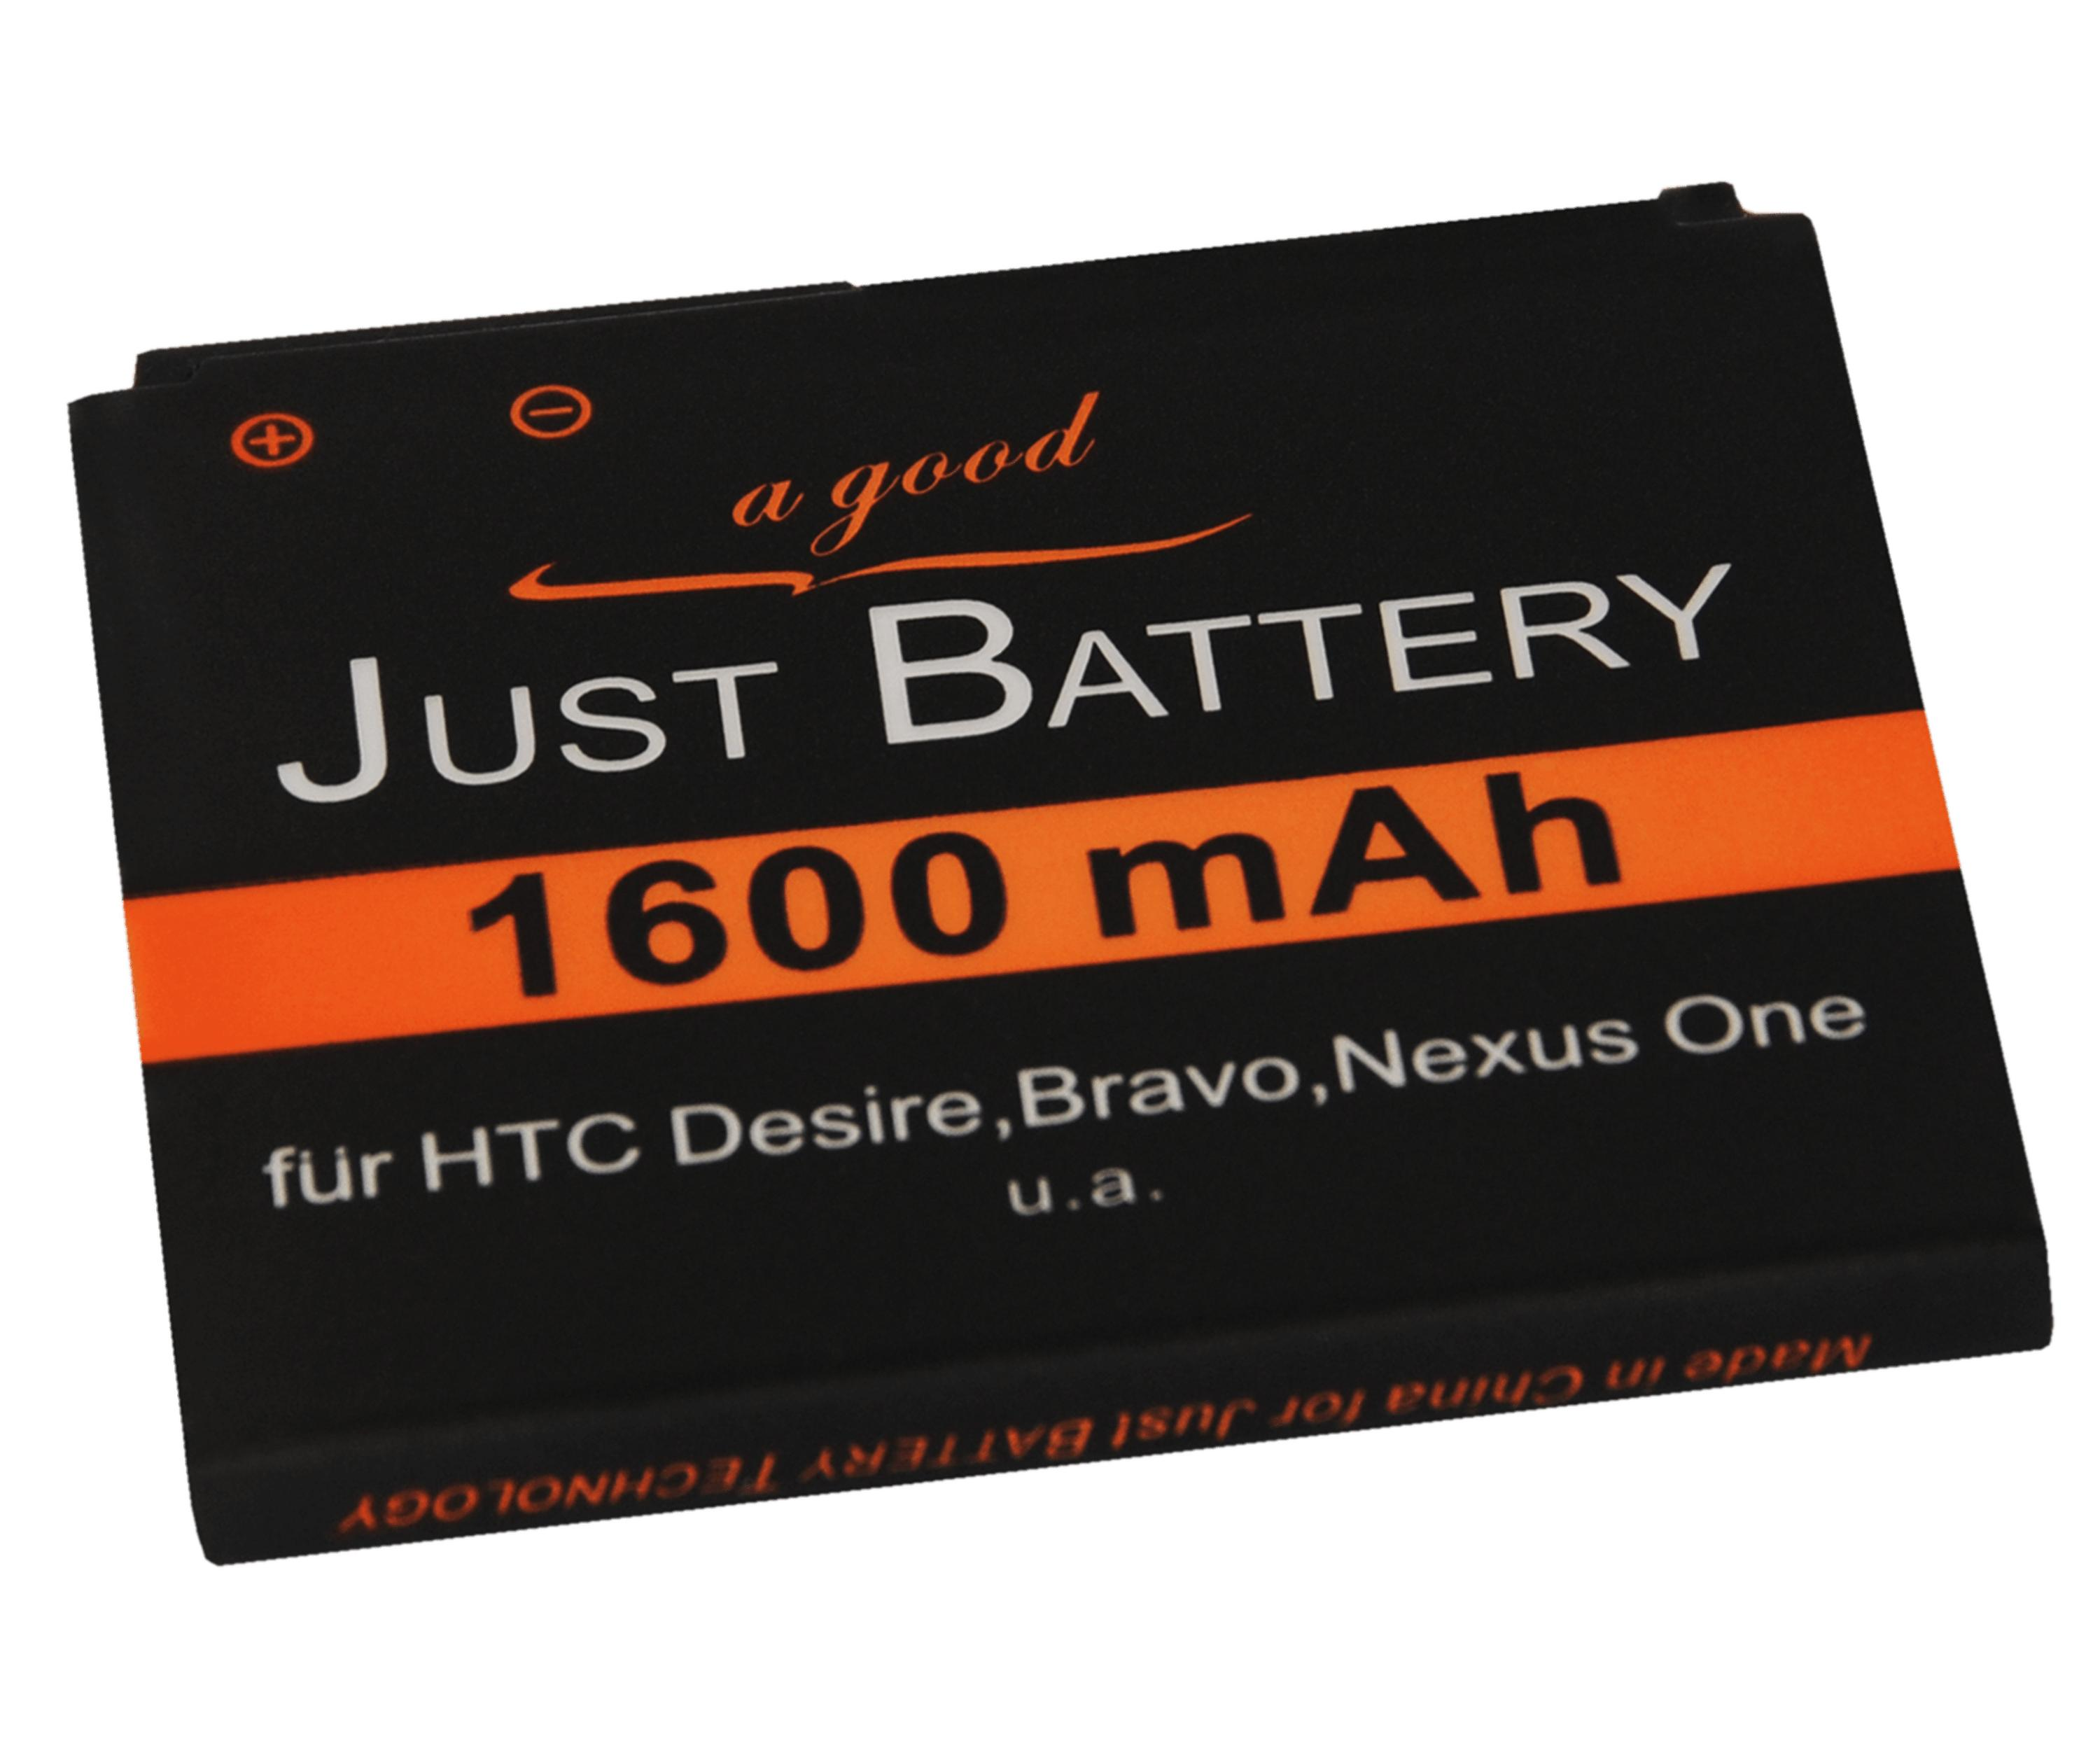 Battery for HTC desire and other